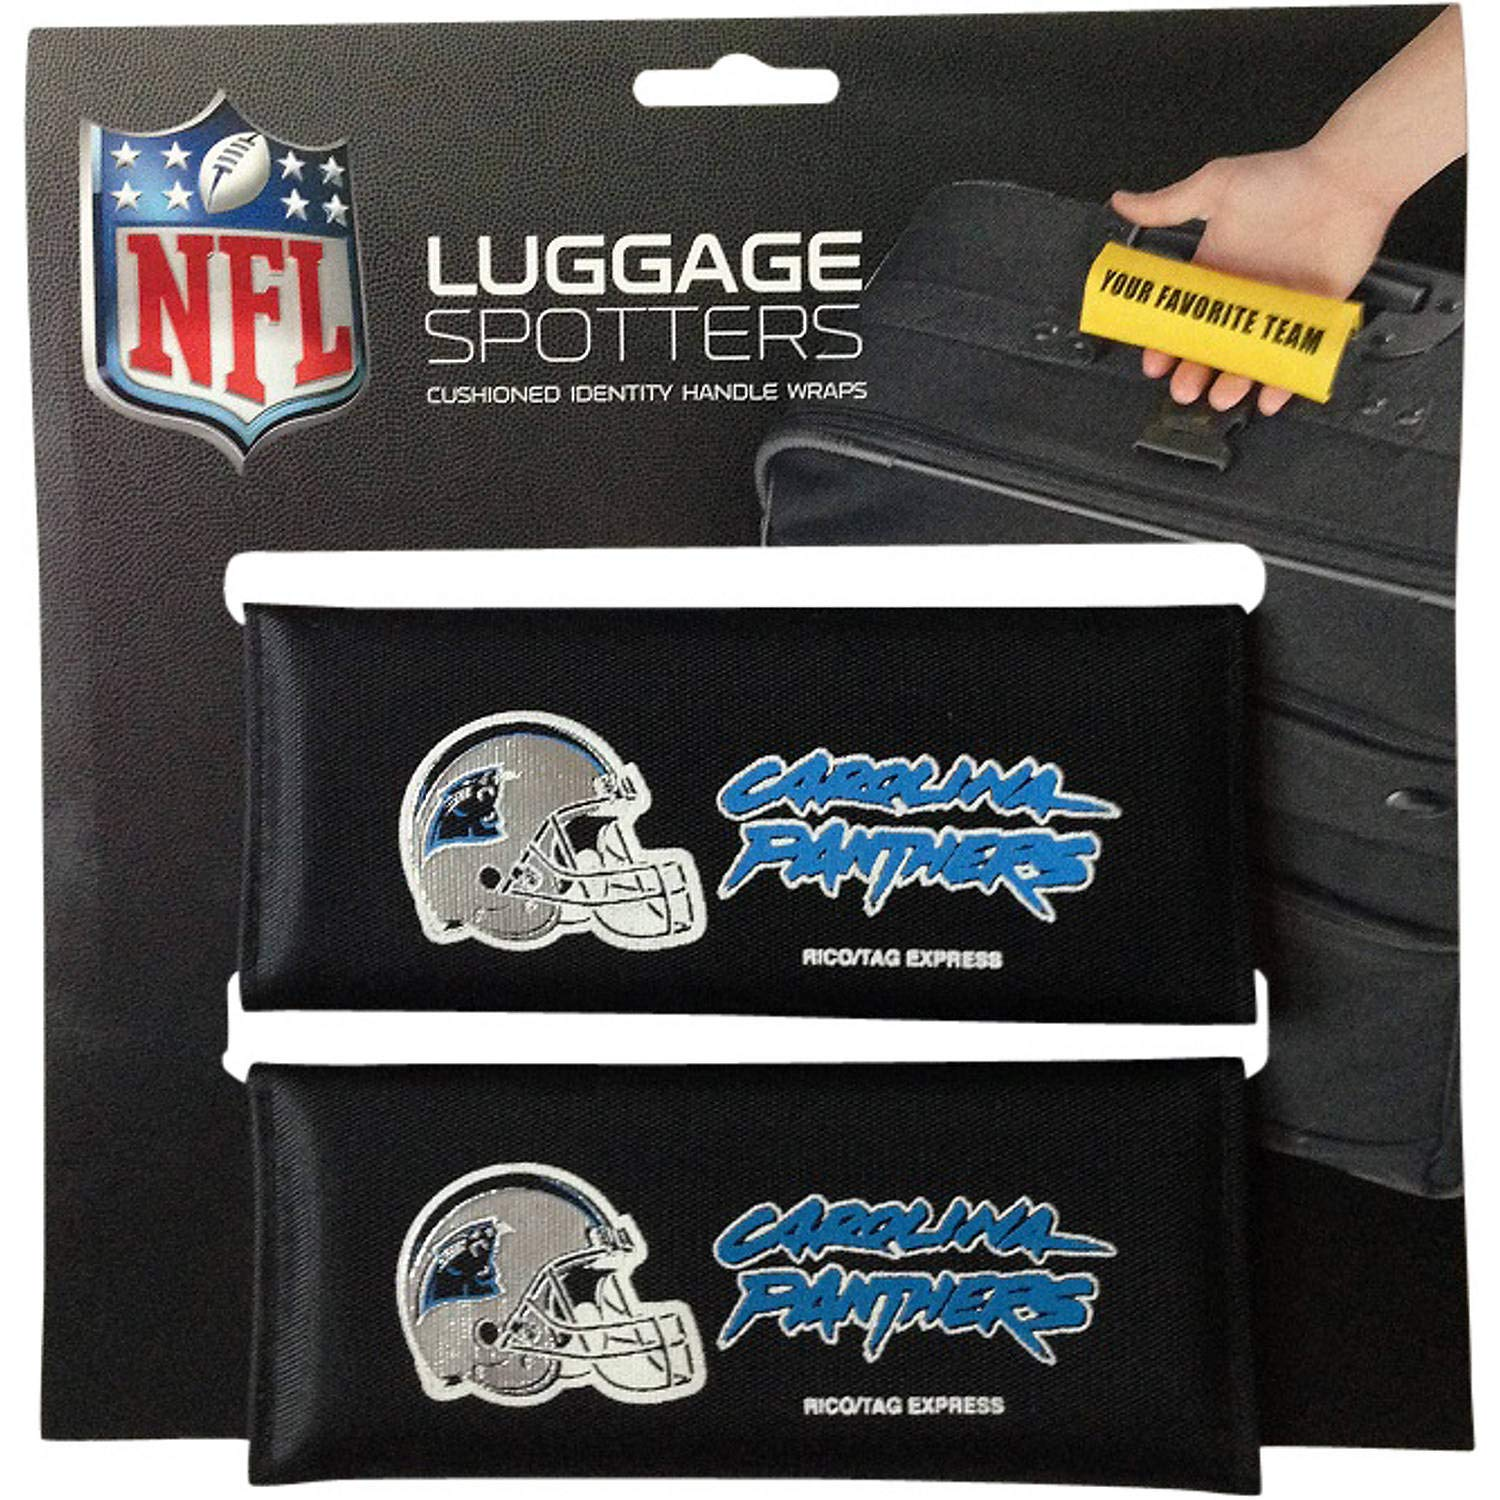 PANTHERS Luggage Spotter Suitcase Handle Wrap Bag Tag Locator with I.D. Pocket (2-PK) - ALMOST GONE! by Luggage Spotter